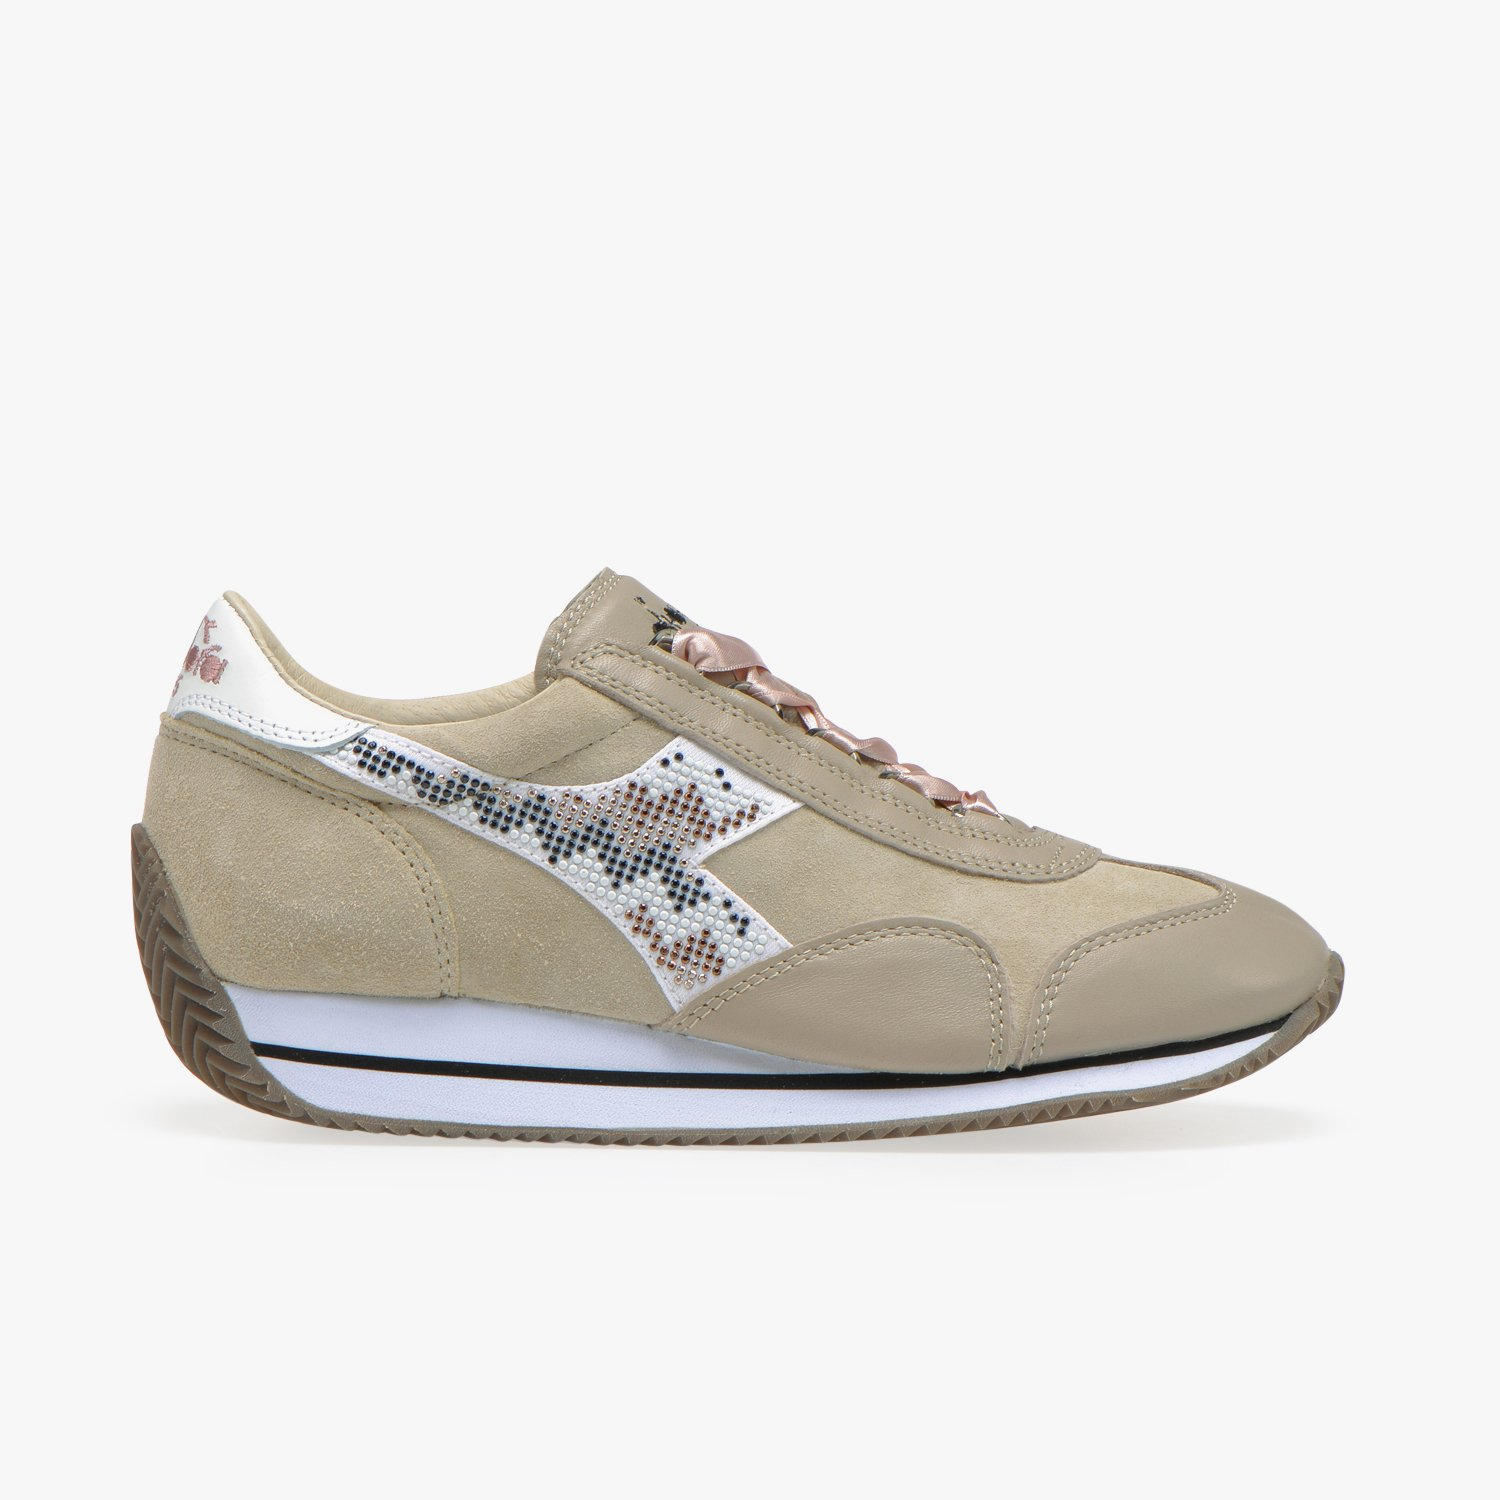 Equipe Pearls sneakers - Pink & Purple Diadora cmezg4